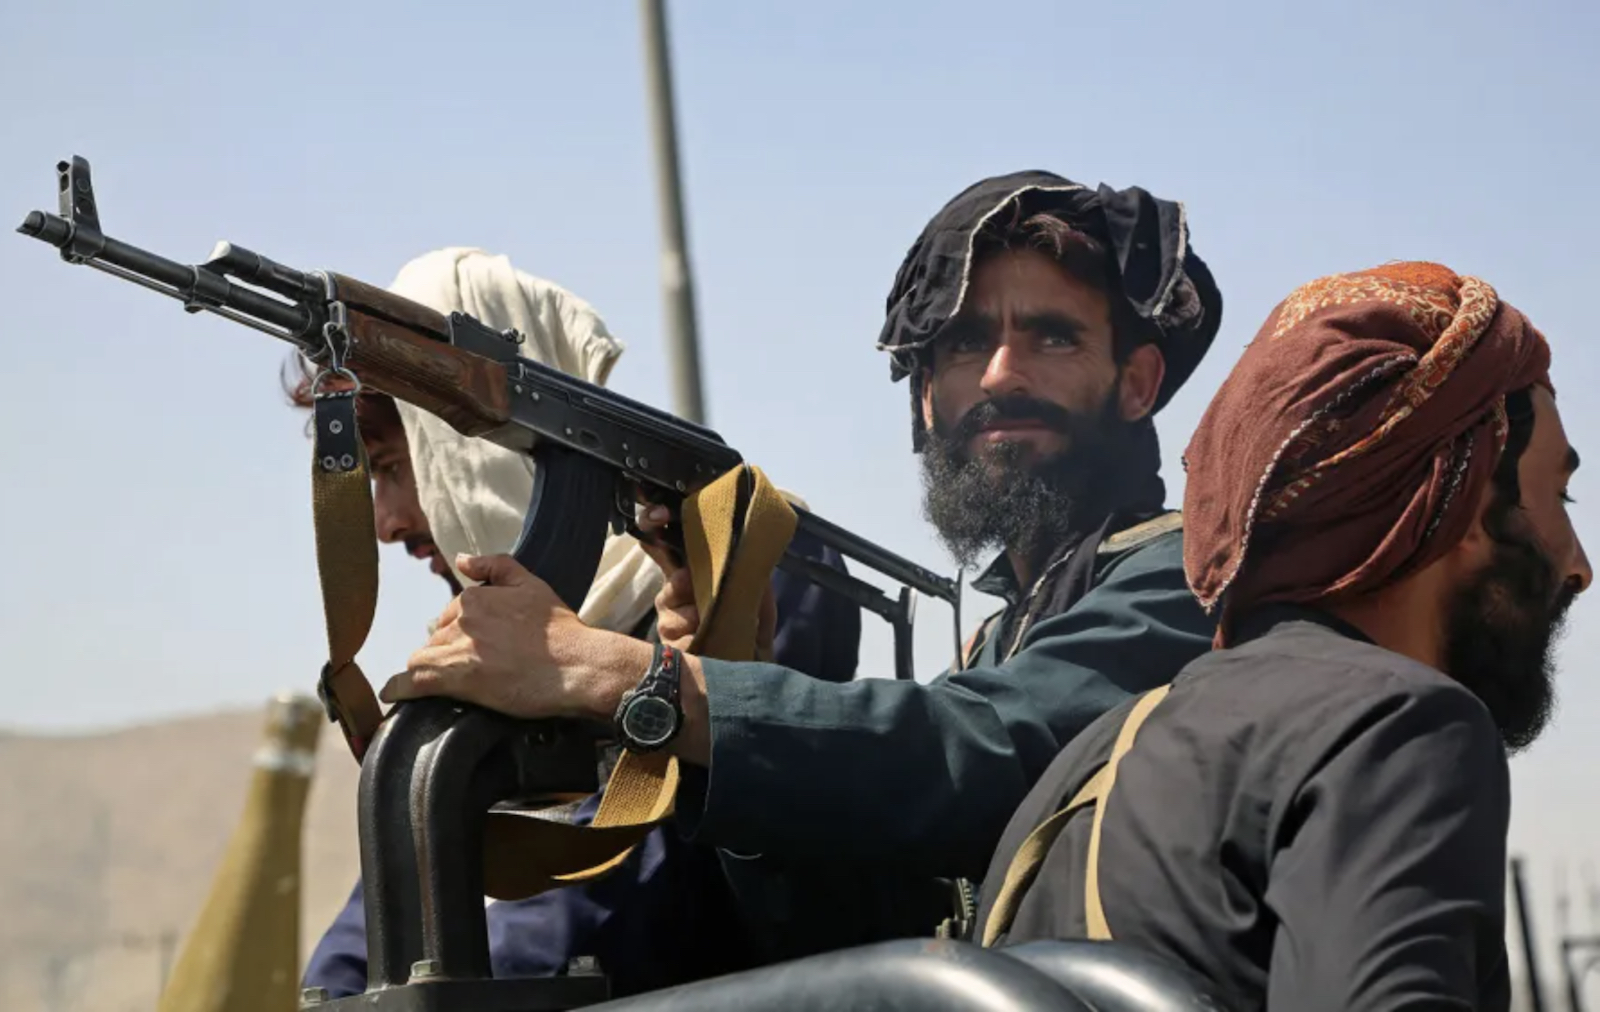 Taliban fighters stand guard in a vehicle along the roadside in Kabul on August 16, 2021, after a stunningly swift end to Afghanistan's 20-year war. Photo: AFP